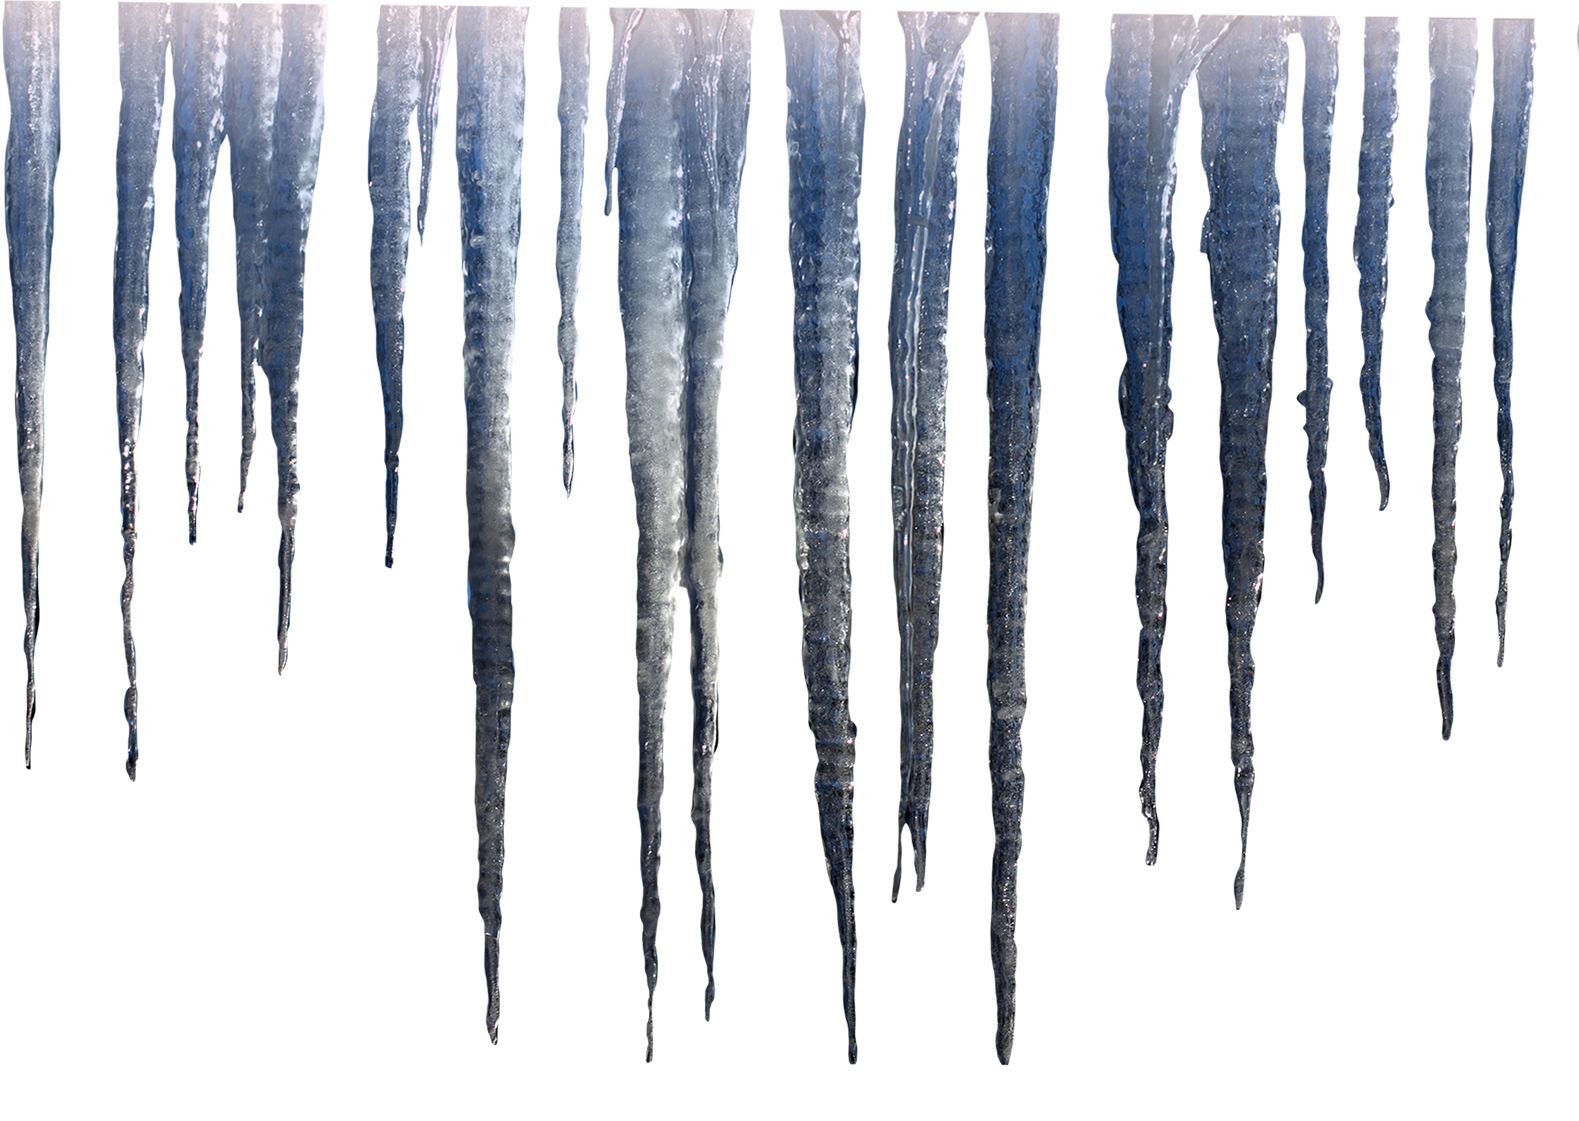 Icicles drawing realistic. Photoshop digital art create